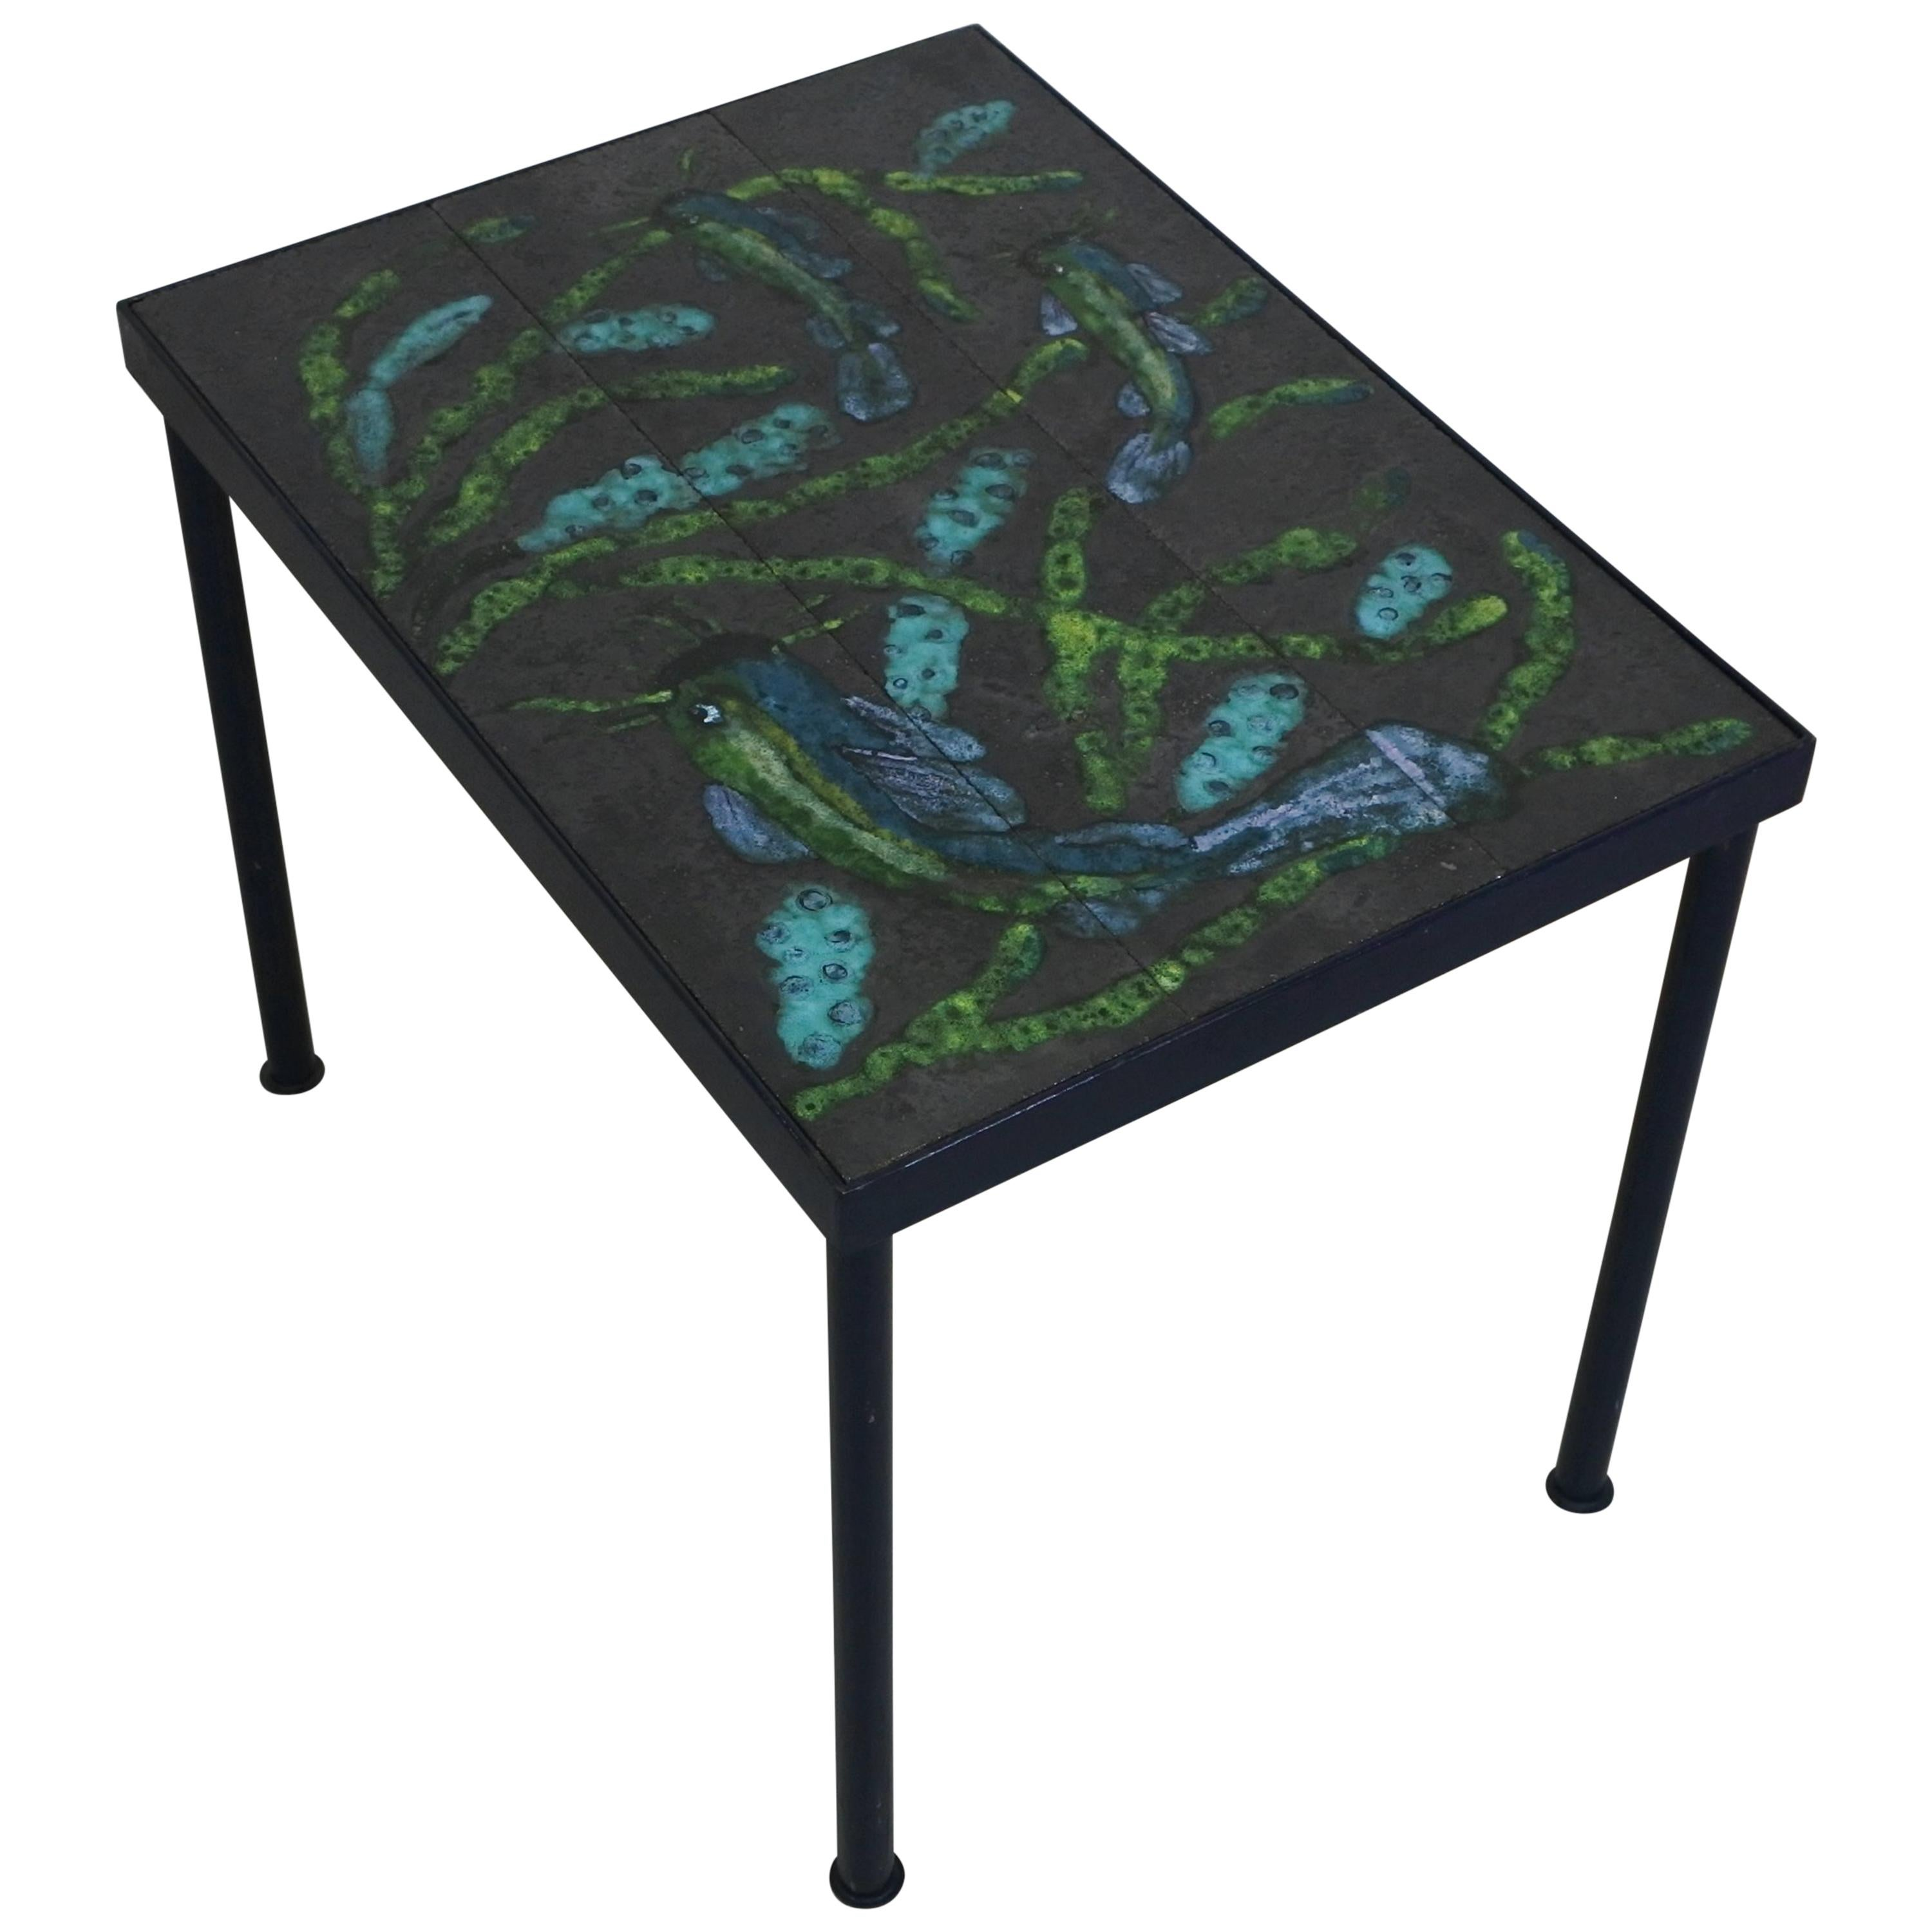 Mid-Century Modern Ceramic Side Table Attr. to Jacques Adnet, France, 1950s